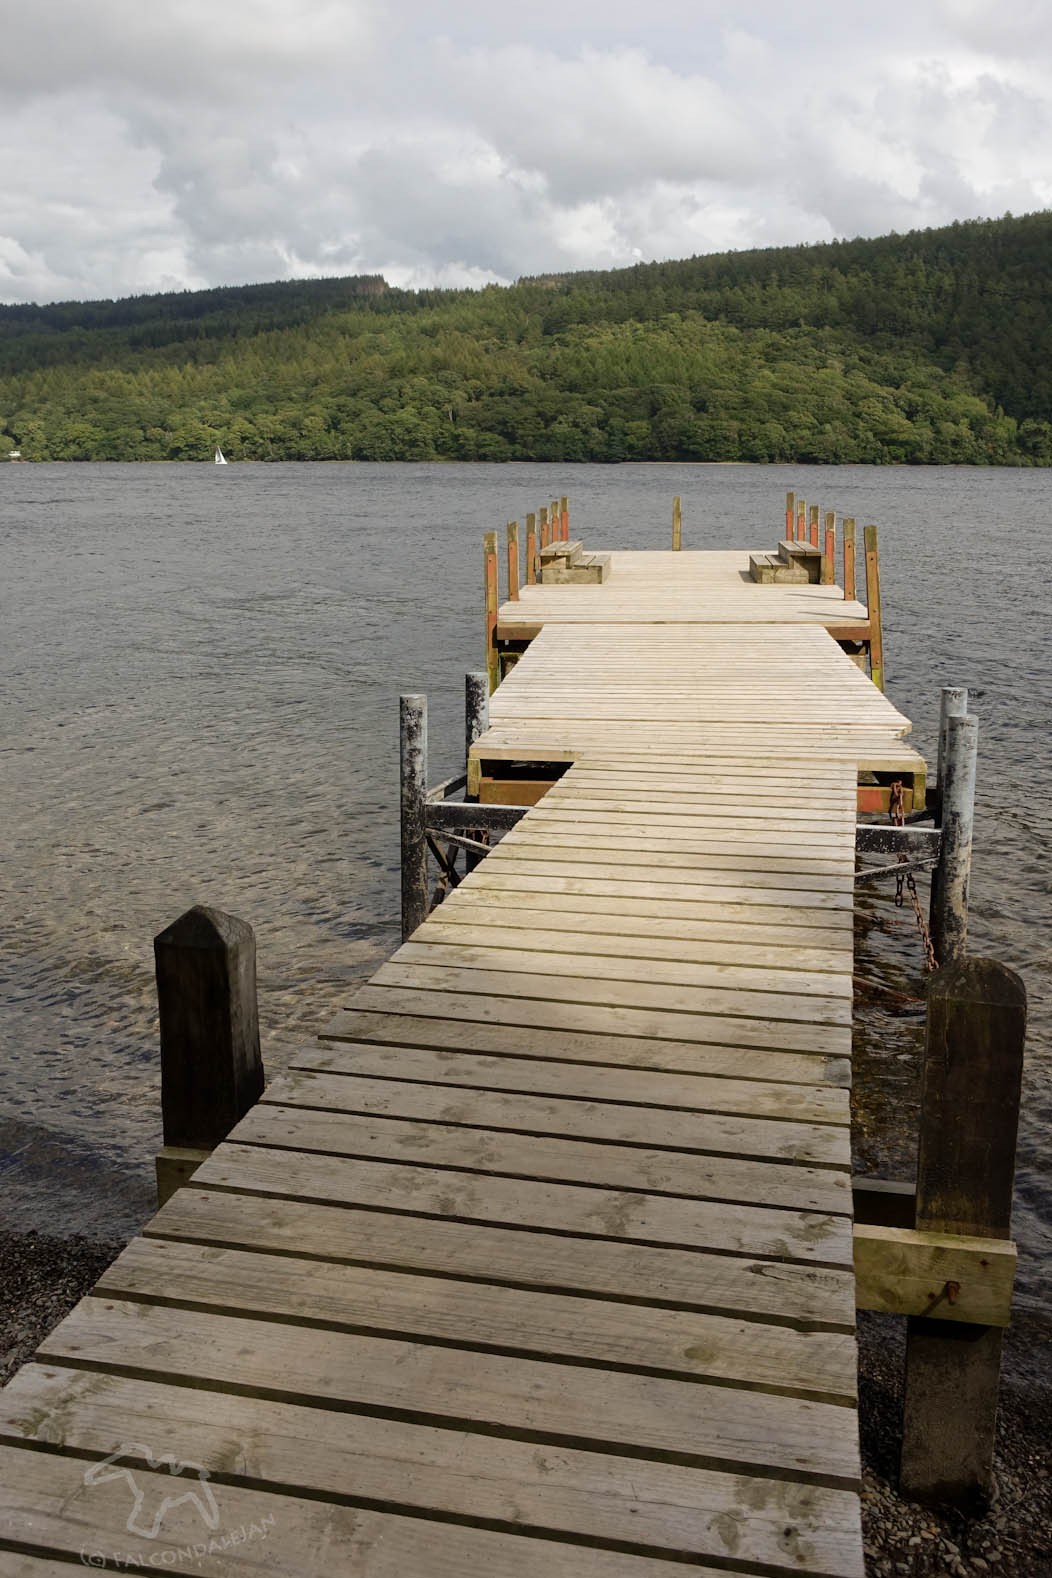 How not to cope with rain on holiday on Falcondale Life blog. Why does it always rain on me in the Lake district? But there are ways to let it ruin a holiday. Learn from my mistakes. Jetty with views of Coniston water.